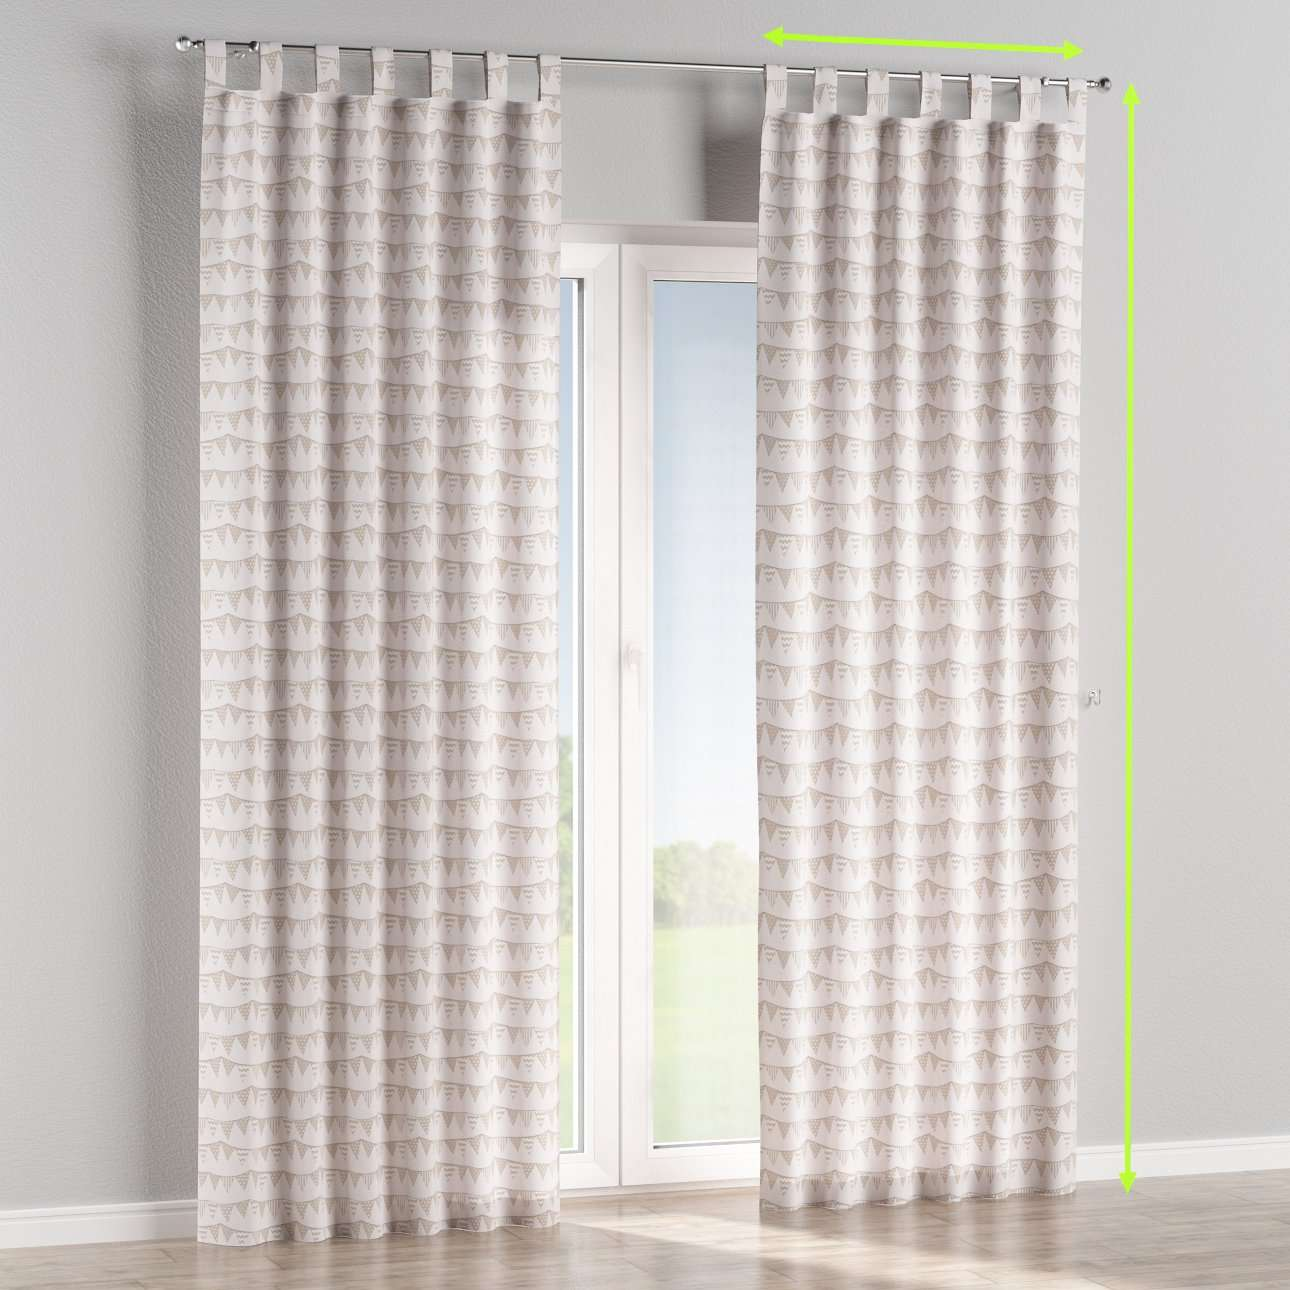 Tab top lined curtains in collection Marina, fabric: 140-65